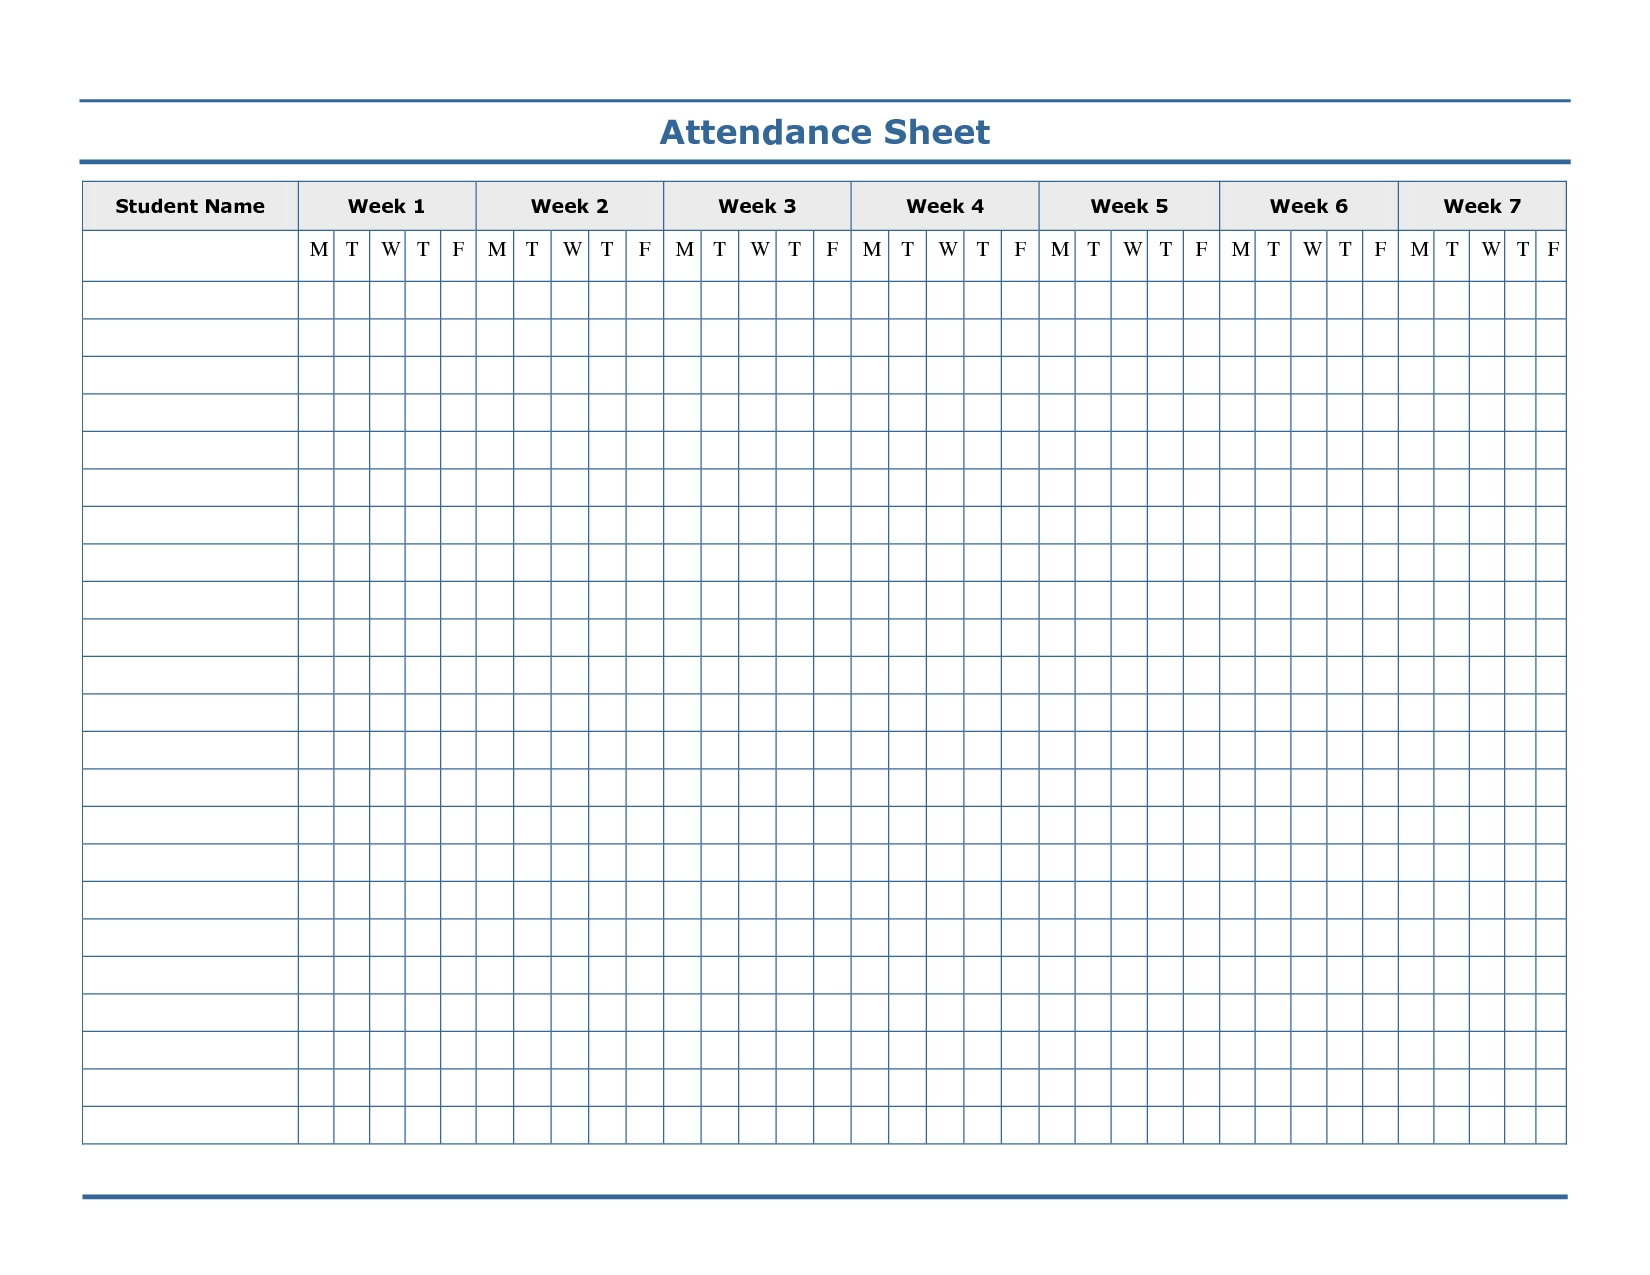 Sheet Free Meeting Attendance Mplate In Word Microsoft-Monthly Sign Up Sheet Templates